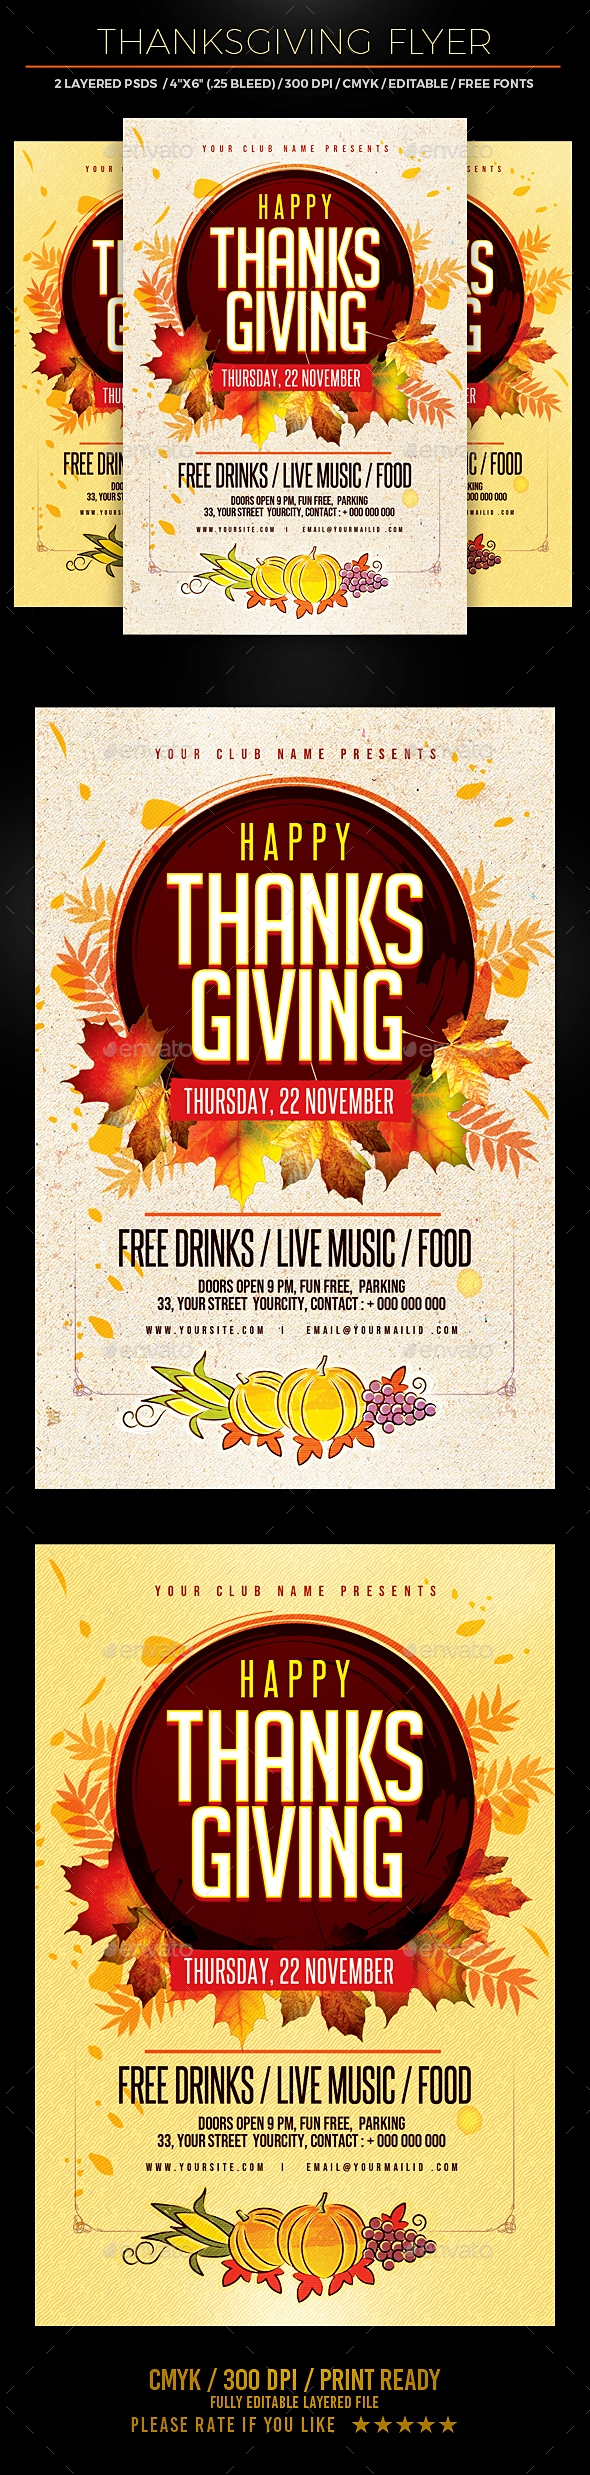 Flyers PSD – Thanksgiving Flyer – Download